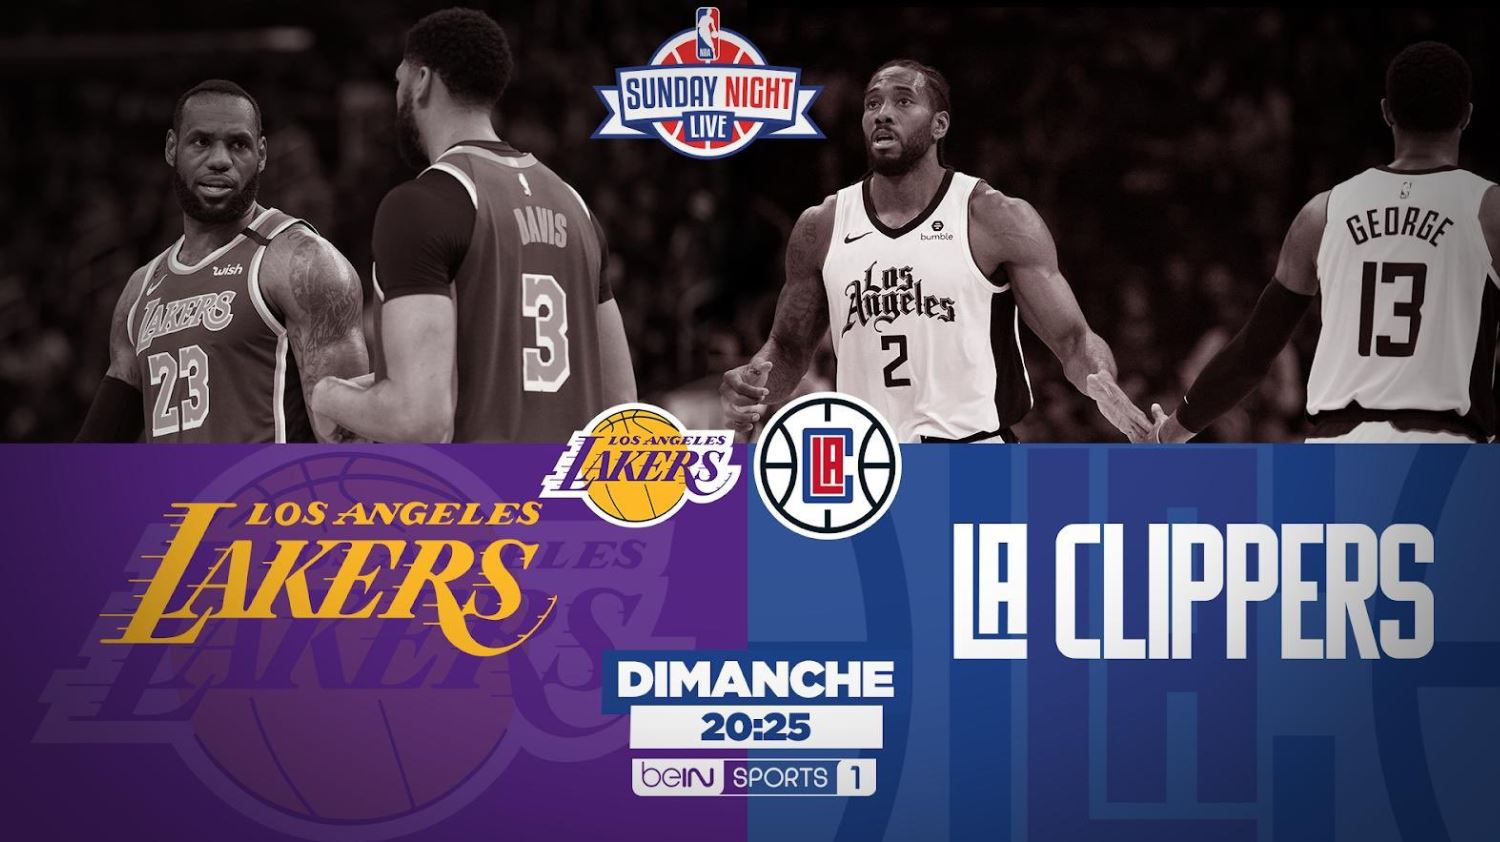 [NBA] Los Angeles Lakers @ Los Angeles Clippers ce dimache sur beIN SPORTS1 !